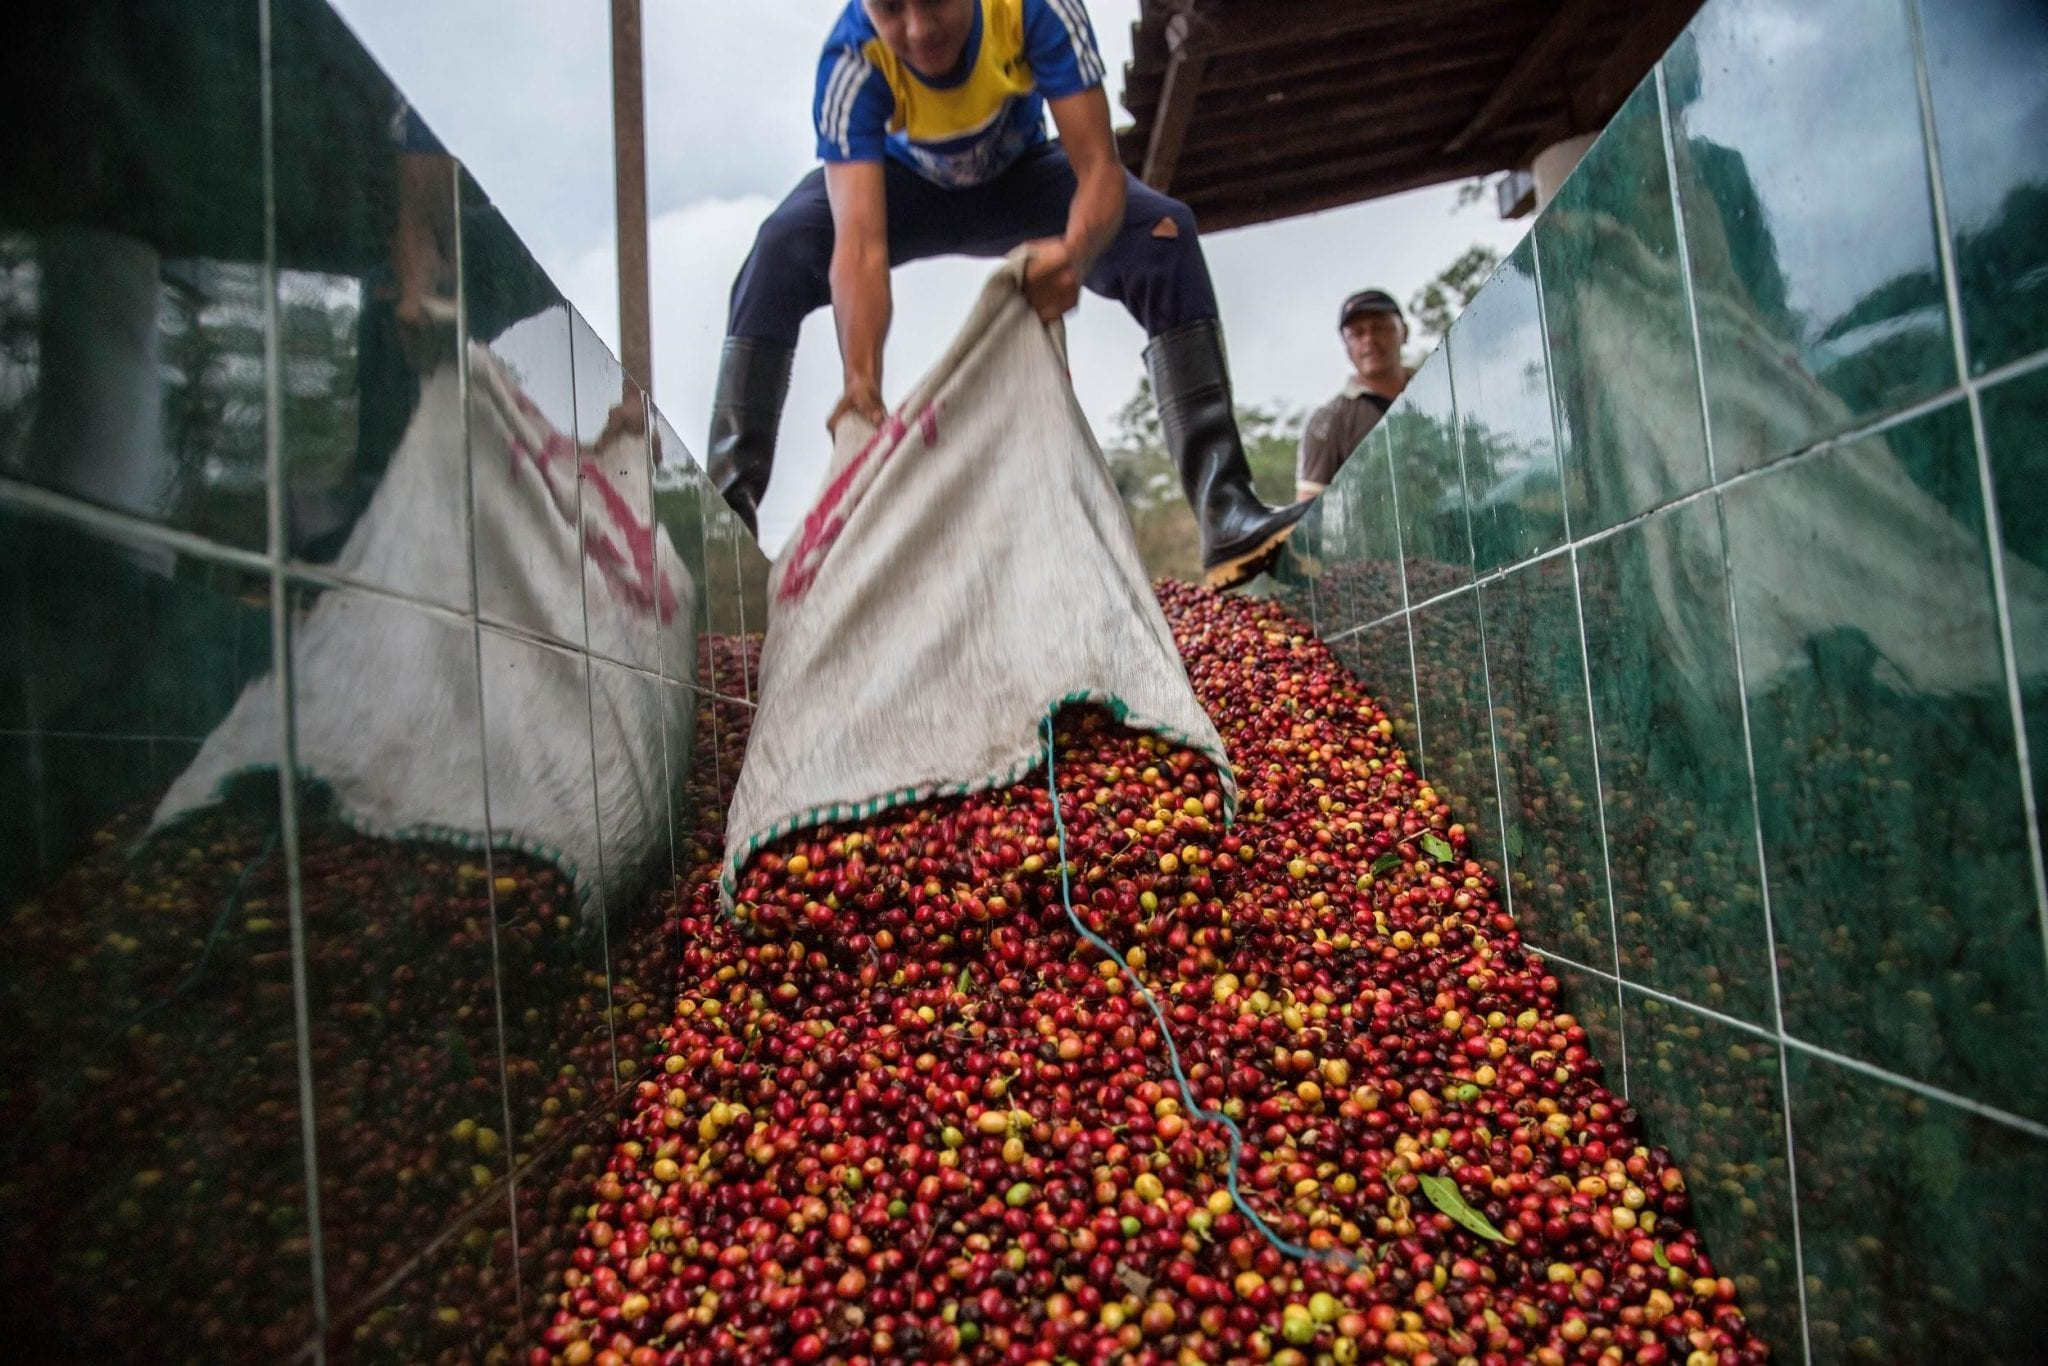 producer puts some coffee cherries into tanks of fermentation